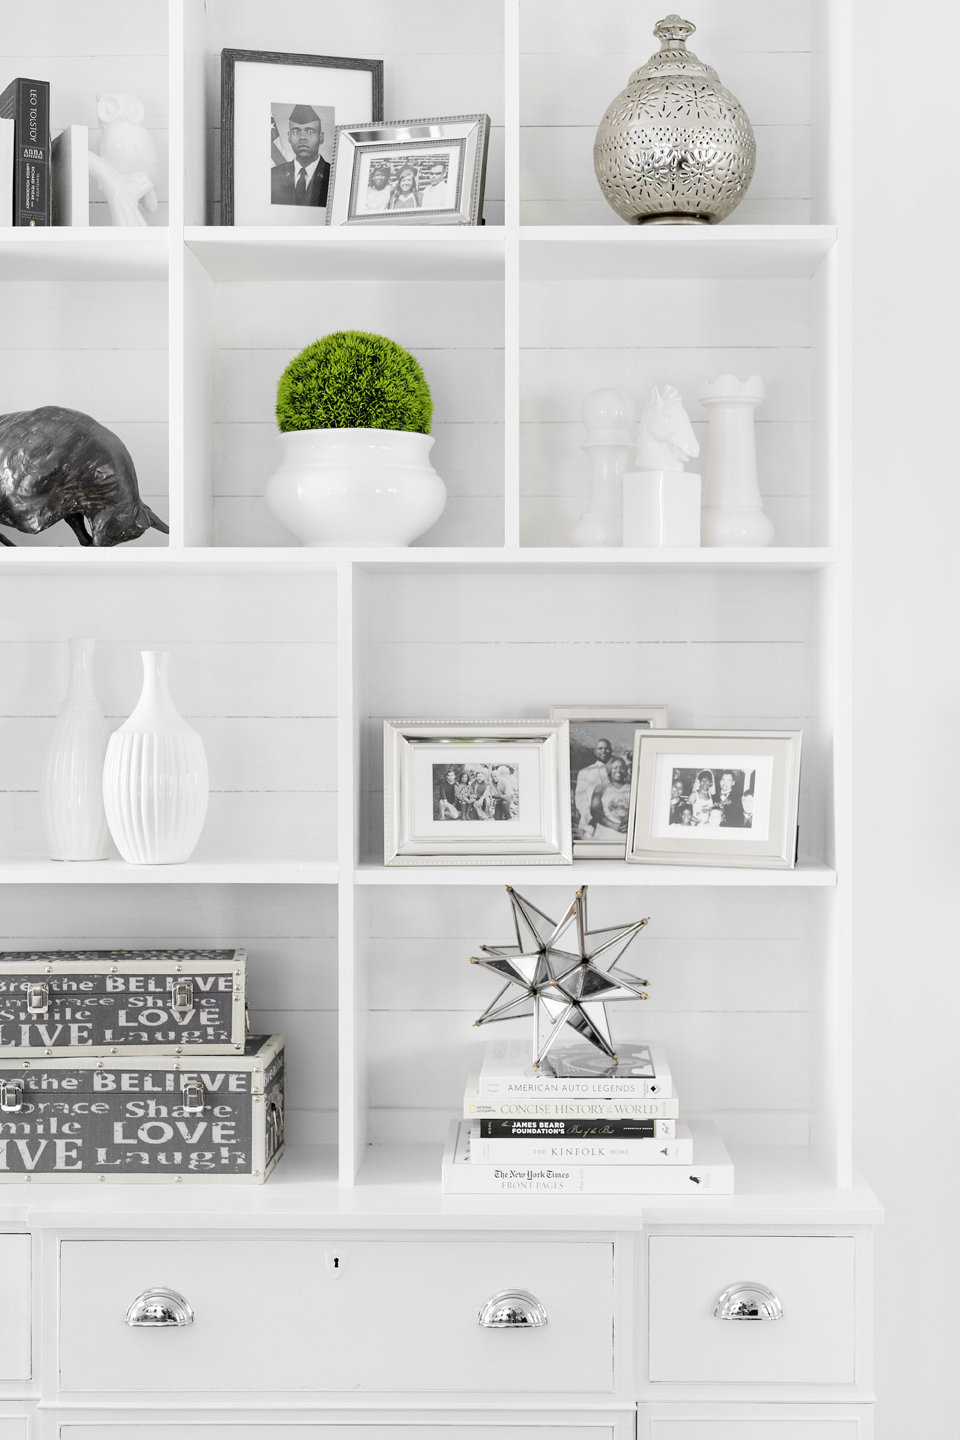 At Home Design: At Home With Nikki